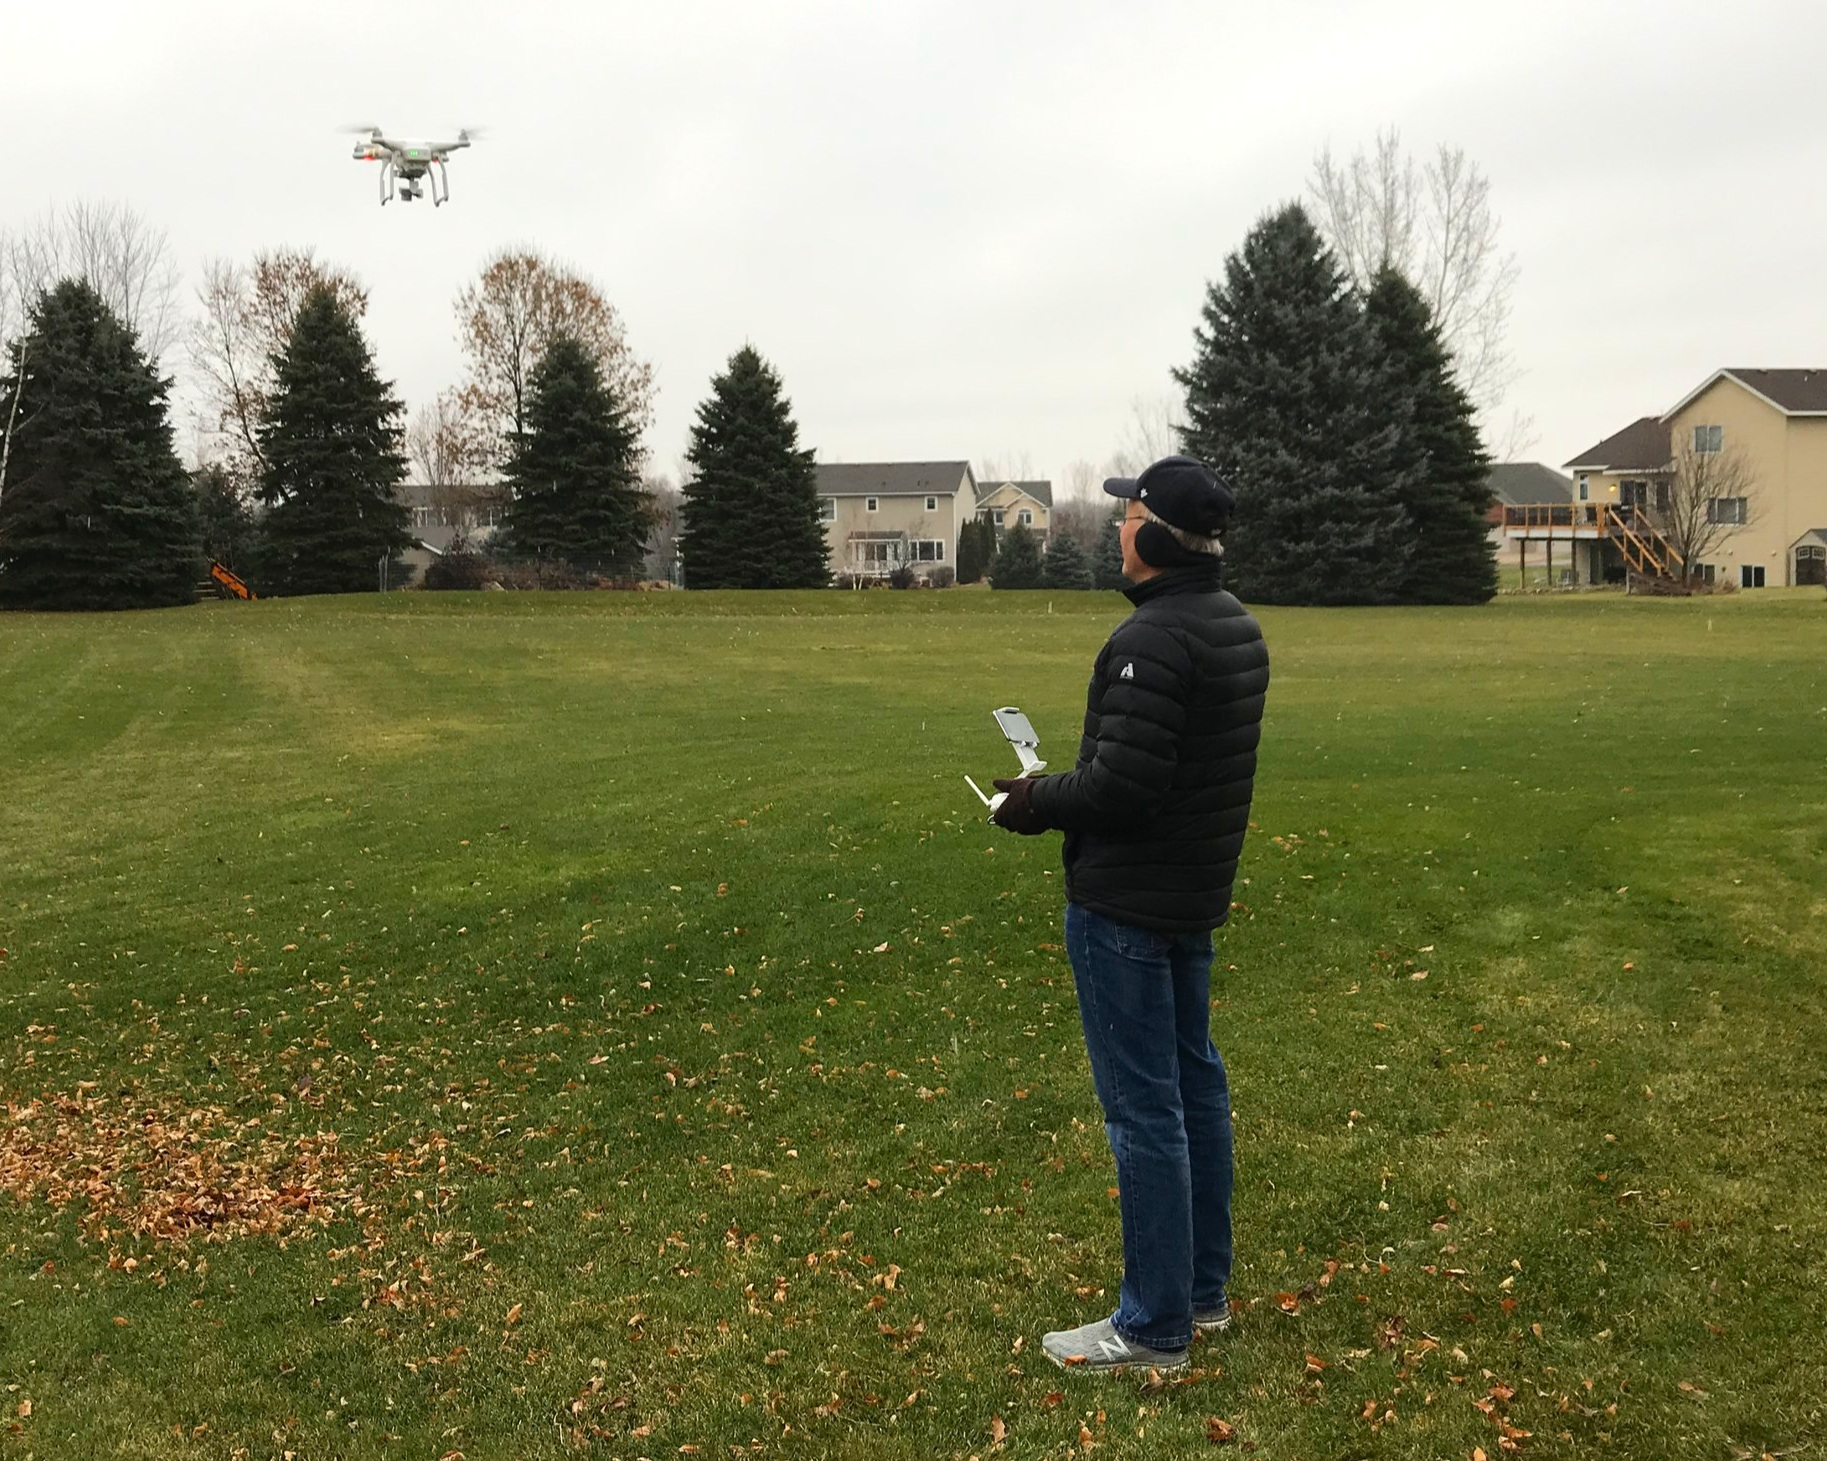 - We have partnered with UAV Coach to offer personal, small and large group flight training classes. We also offer Community Education classes, participate in STEM and other outreach programs.